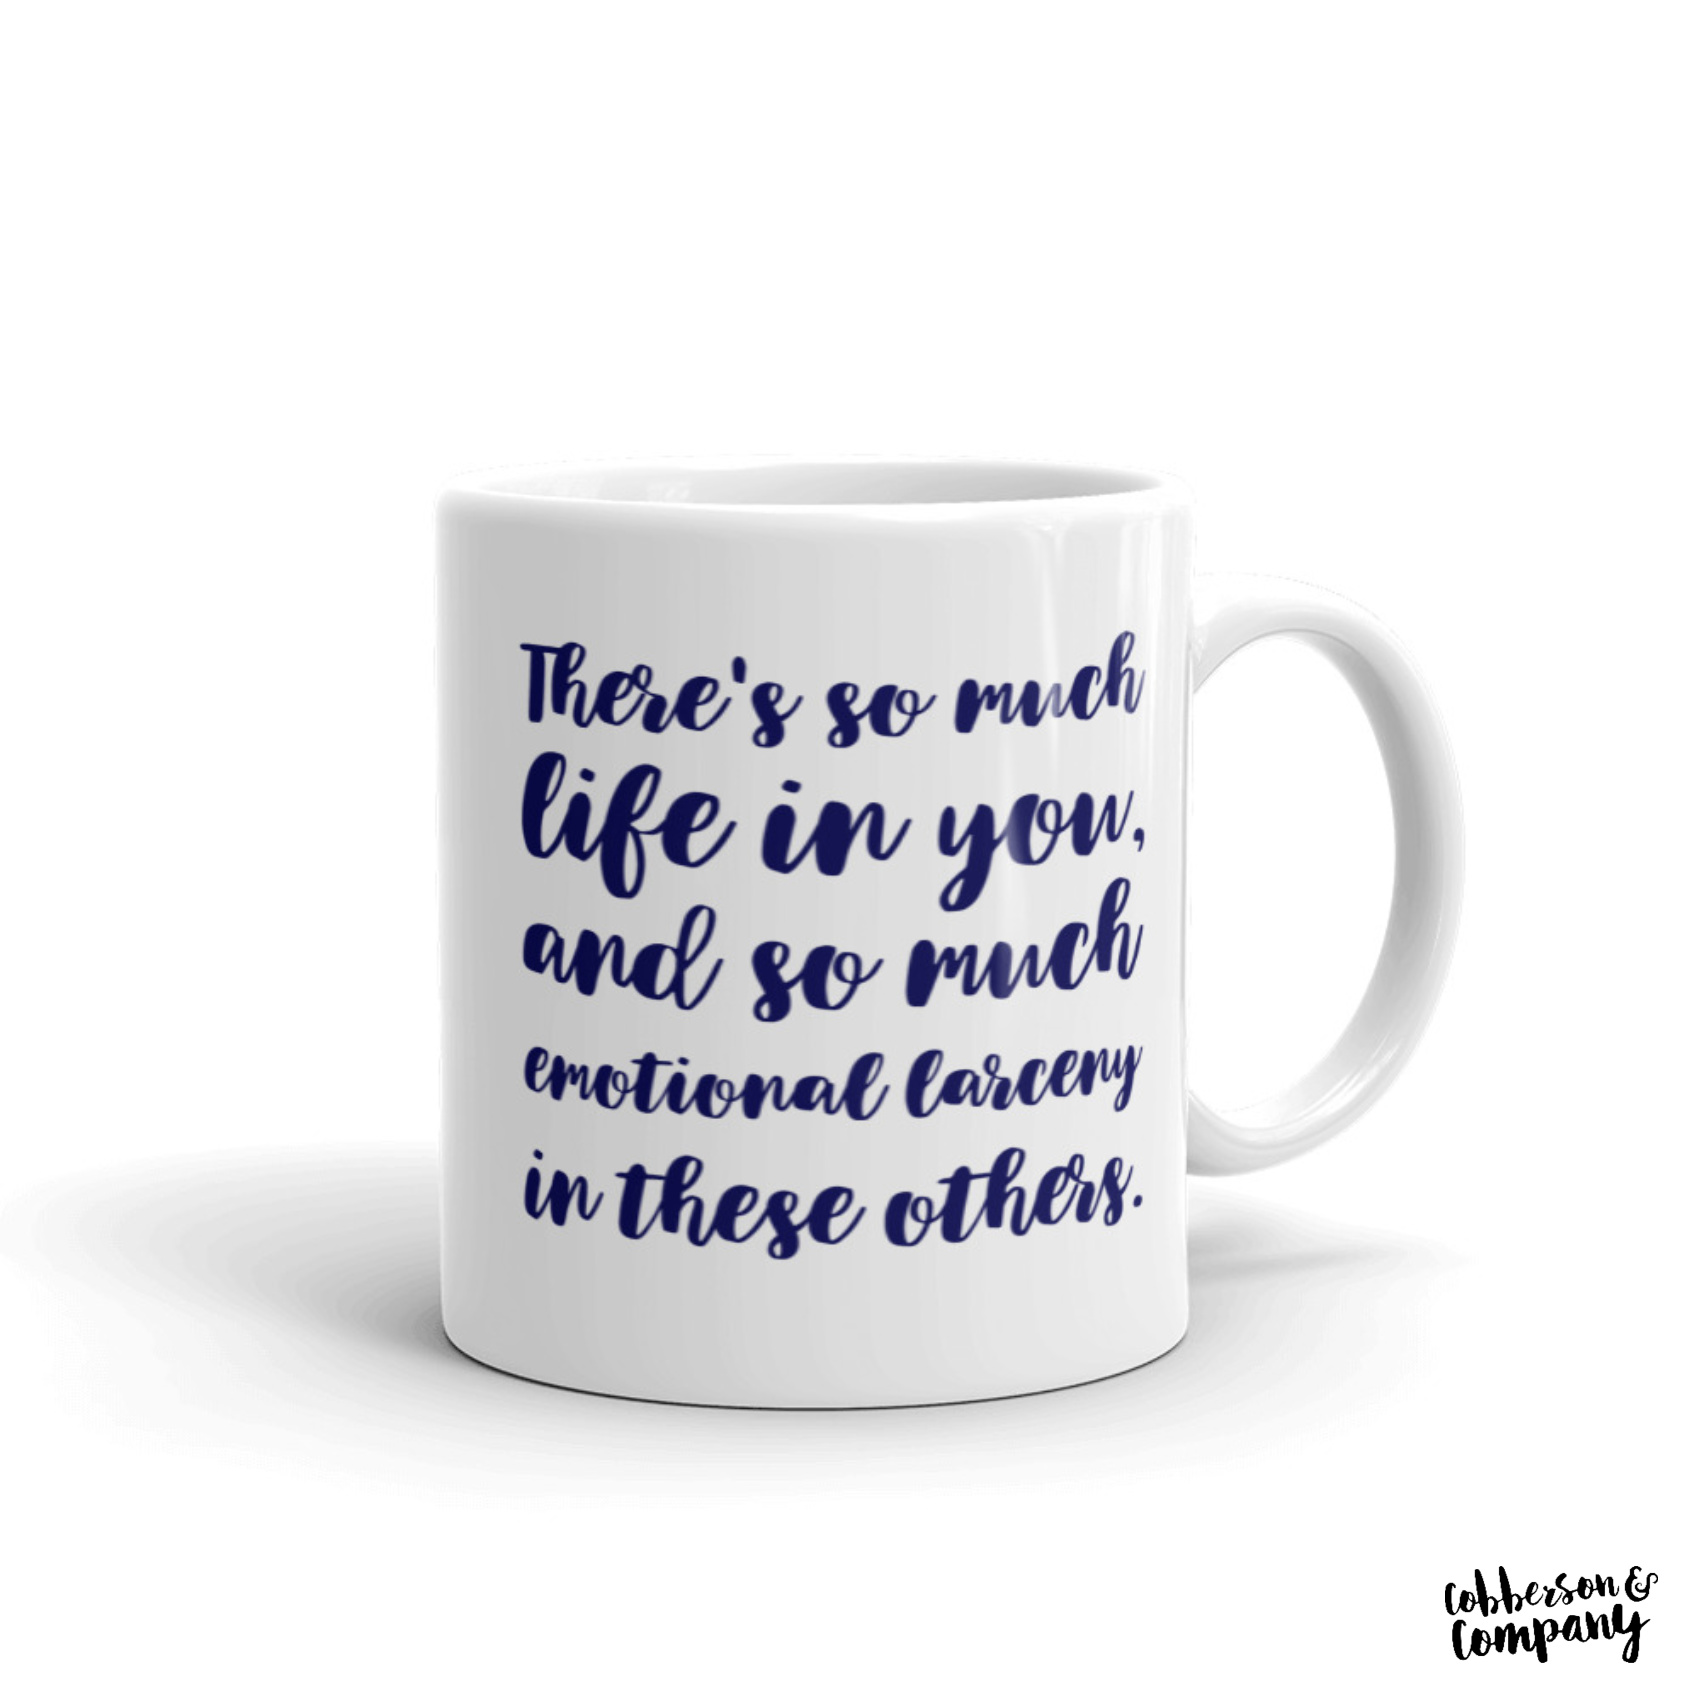 emotional larceny singles movie mug